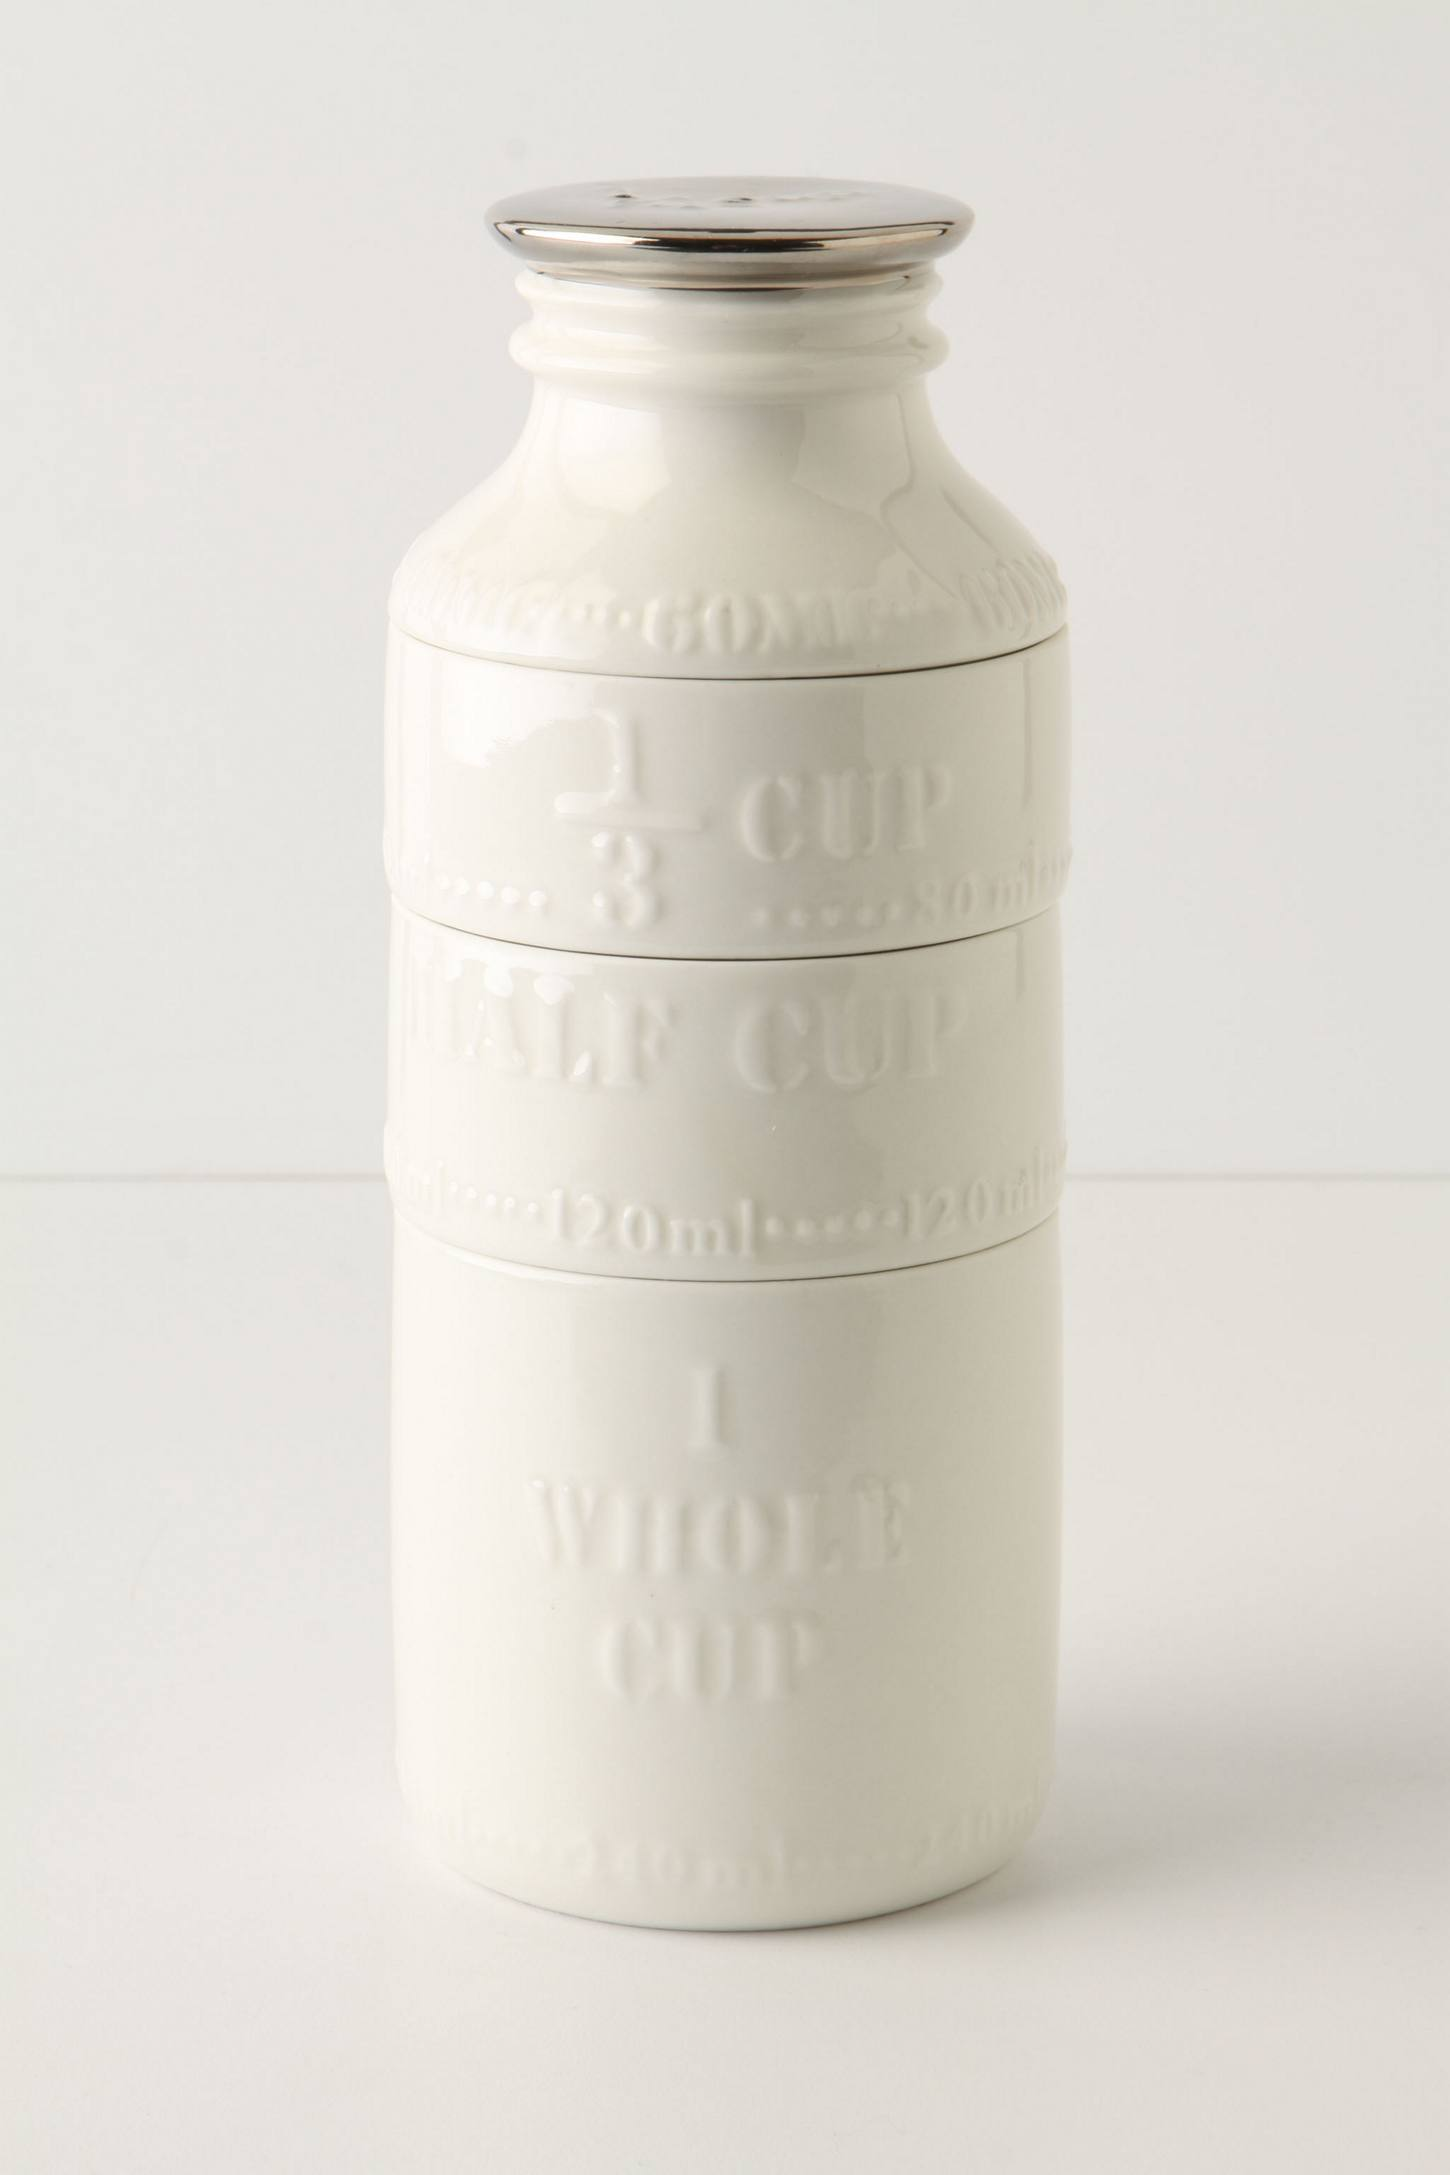 Slide View: 1: Milk Bottle Measuring Cups